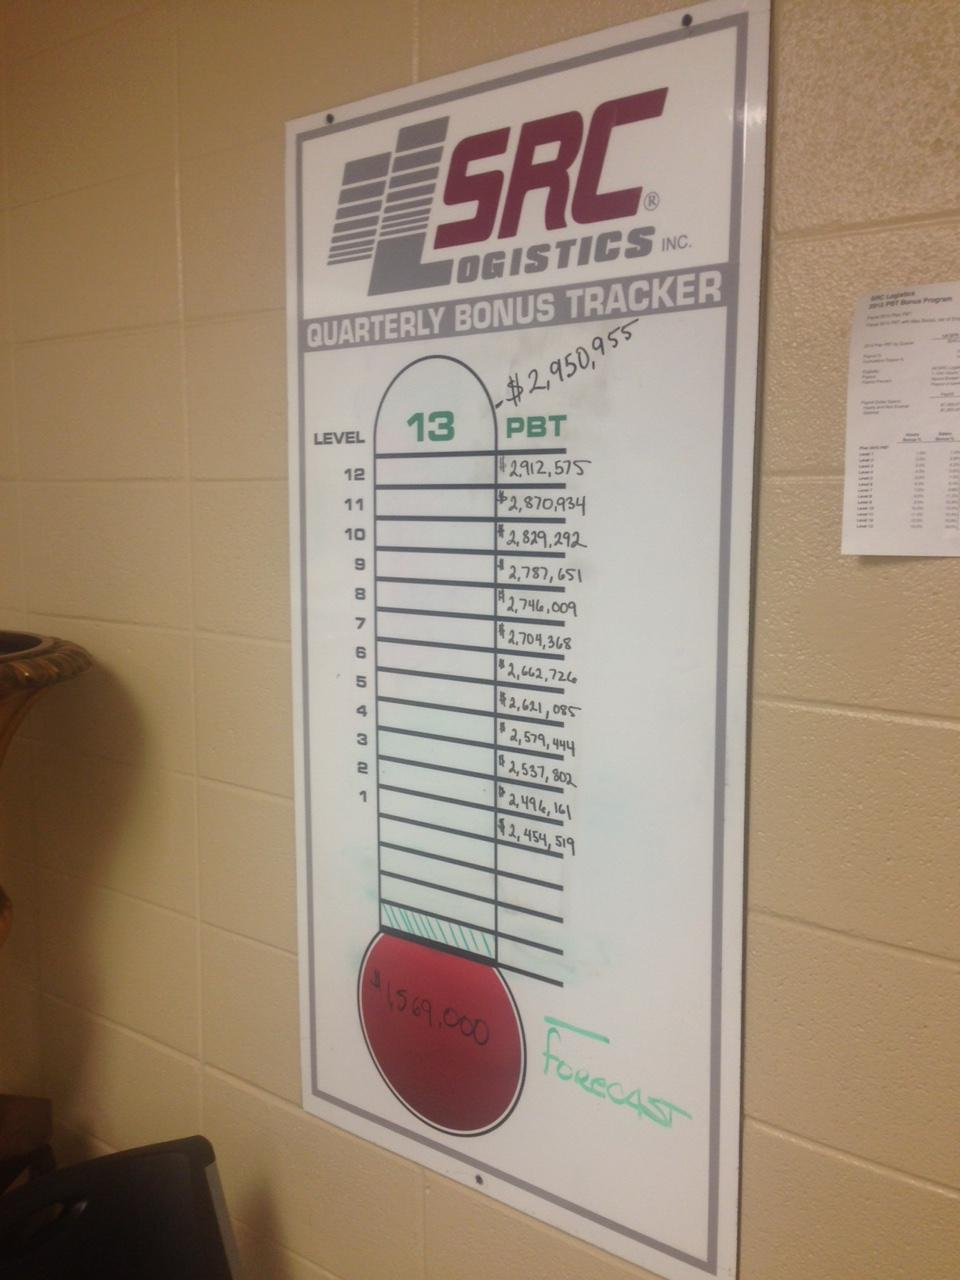 SRCL - critical number